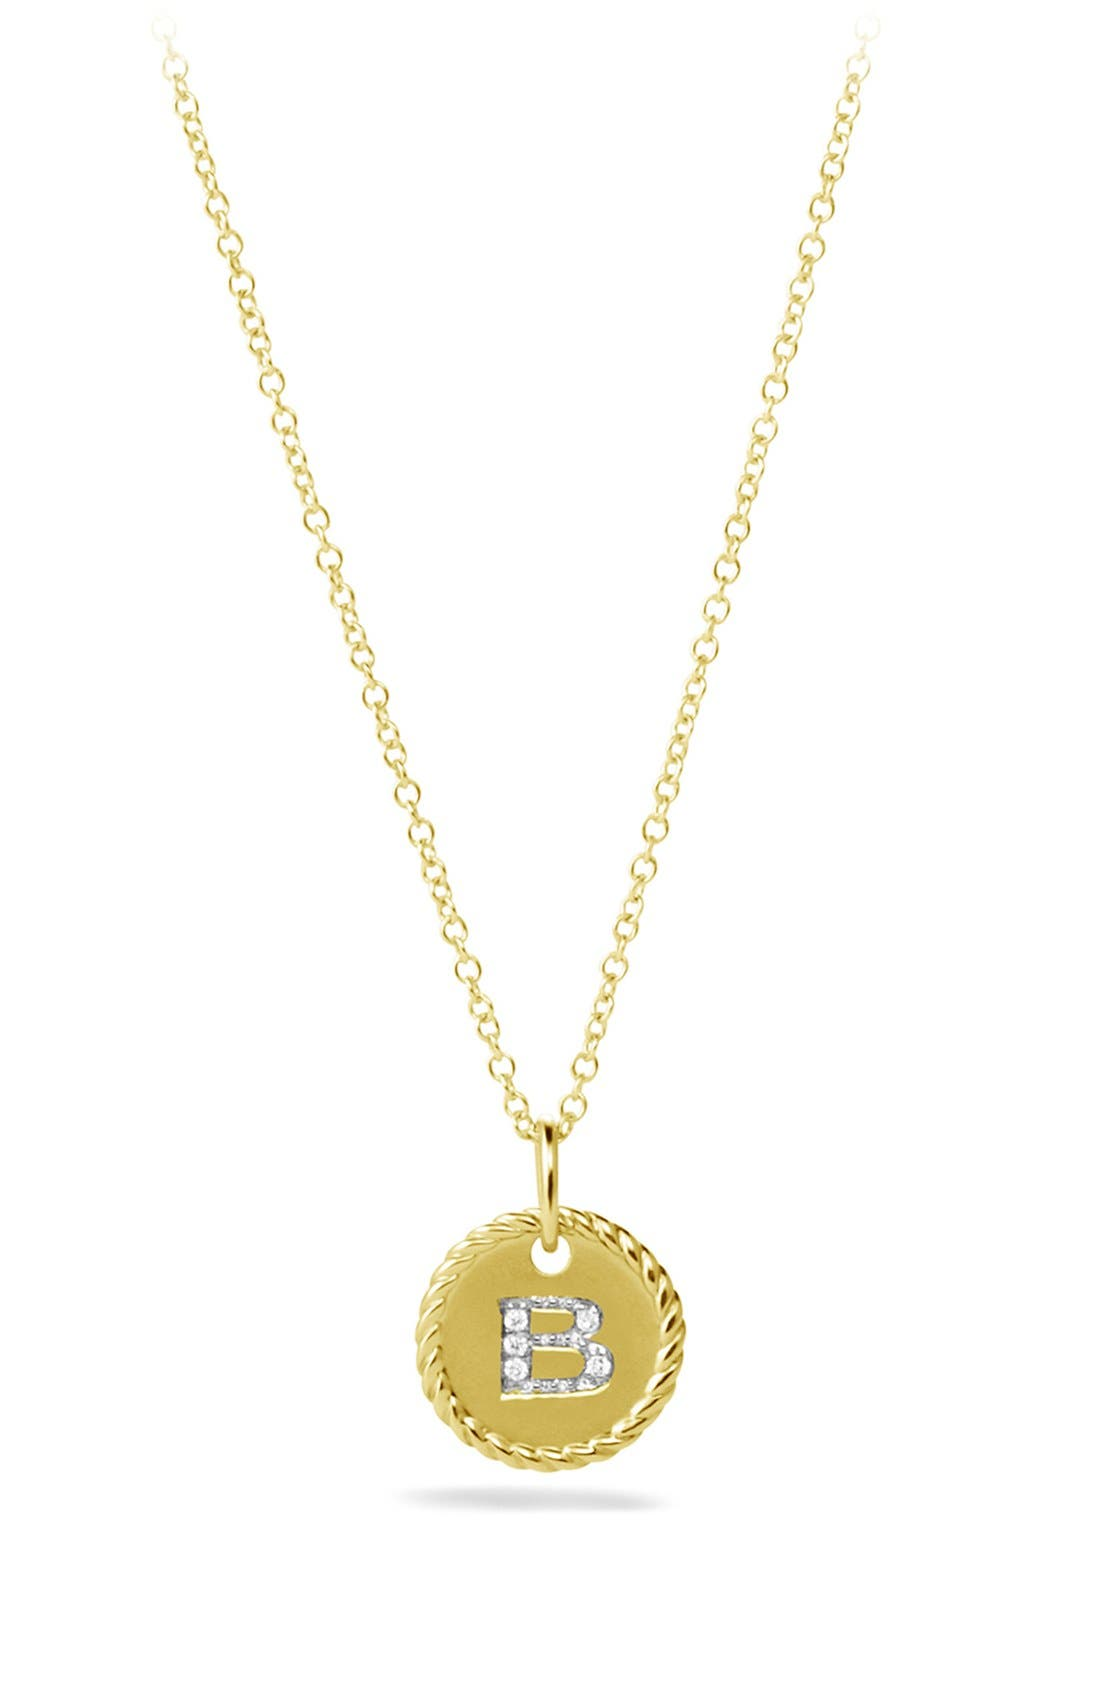 'Cable Collectibles' Initial Pendant with Diamonds in Gold on Chain,                             Main thumbnail 1, color,                             B